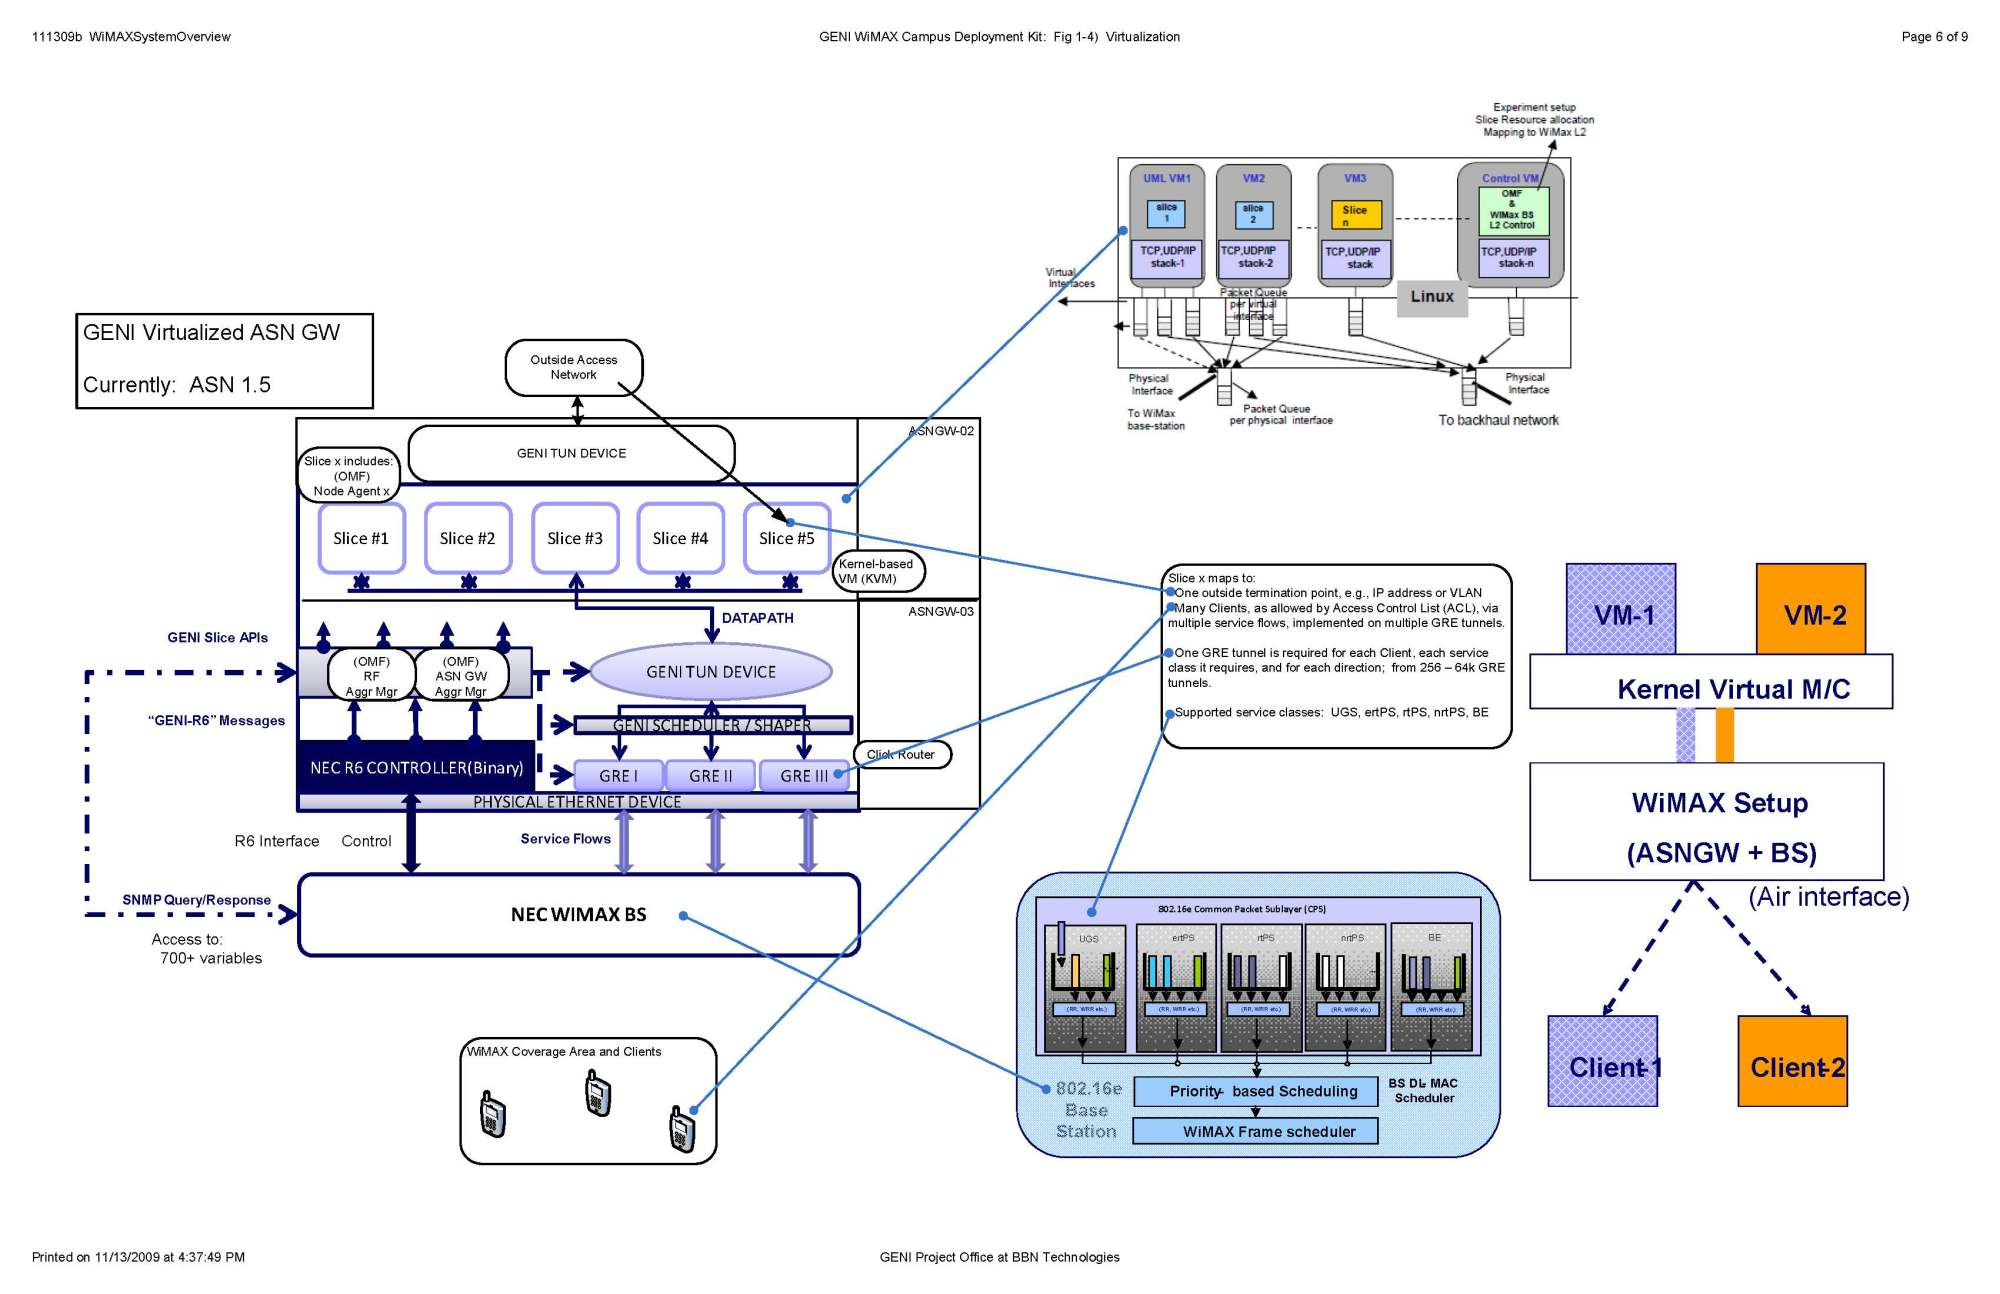 hight resolution of visio 111309b wimaxsystemoverview page 6 jpg 496 5 kb added by hmussman bbn com 9 years ago